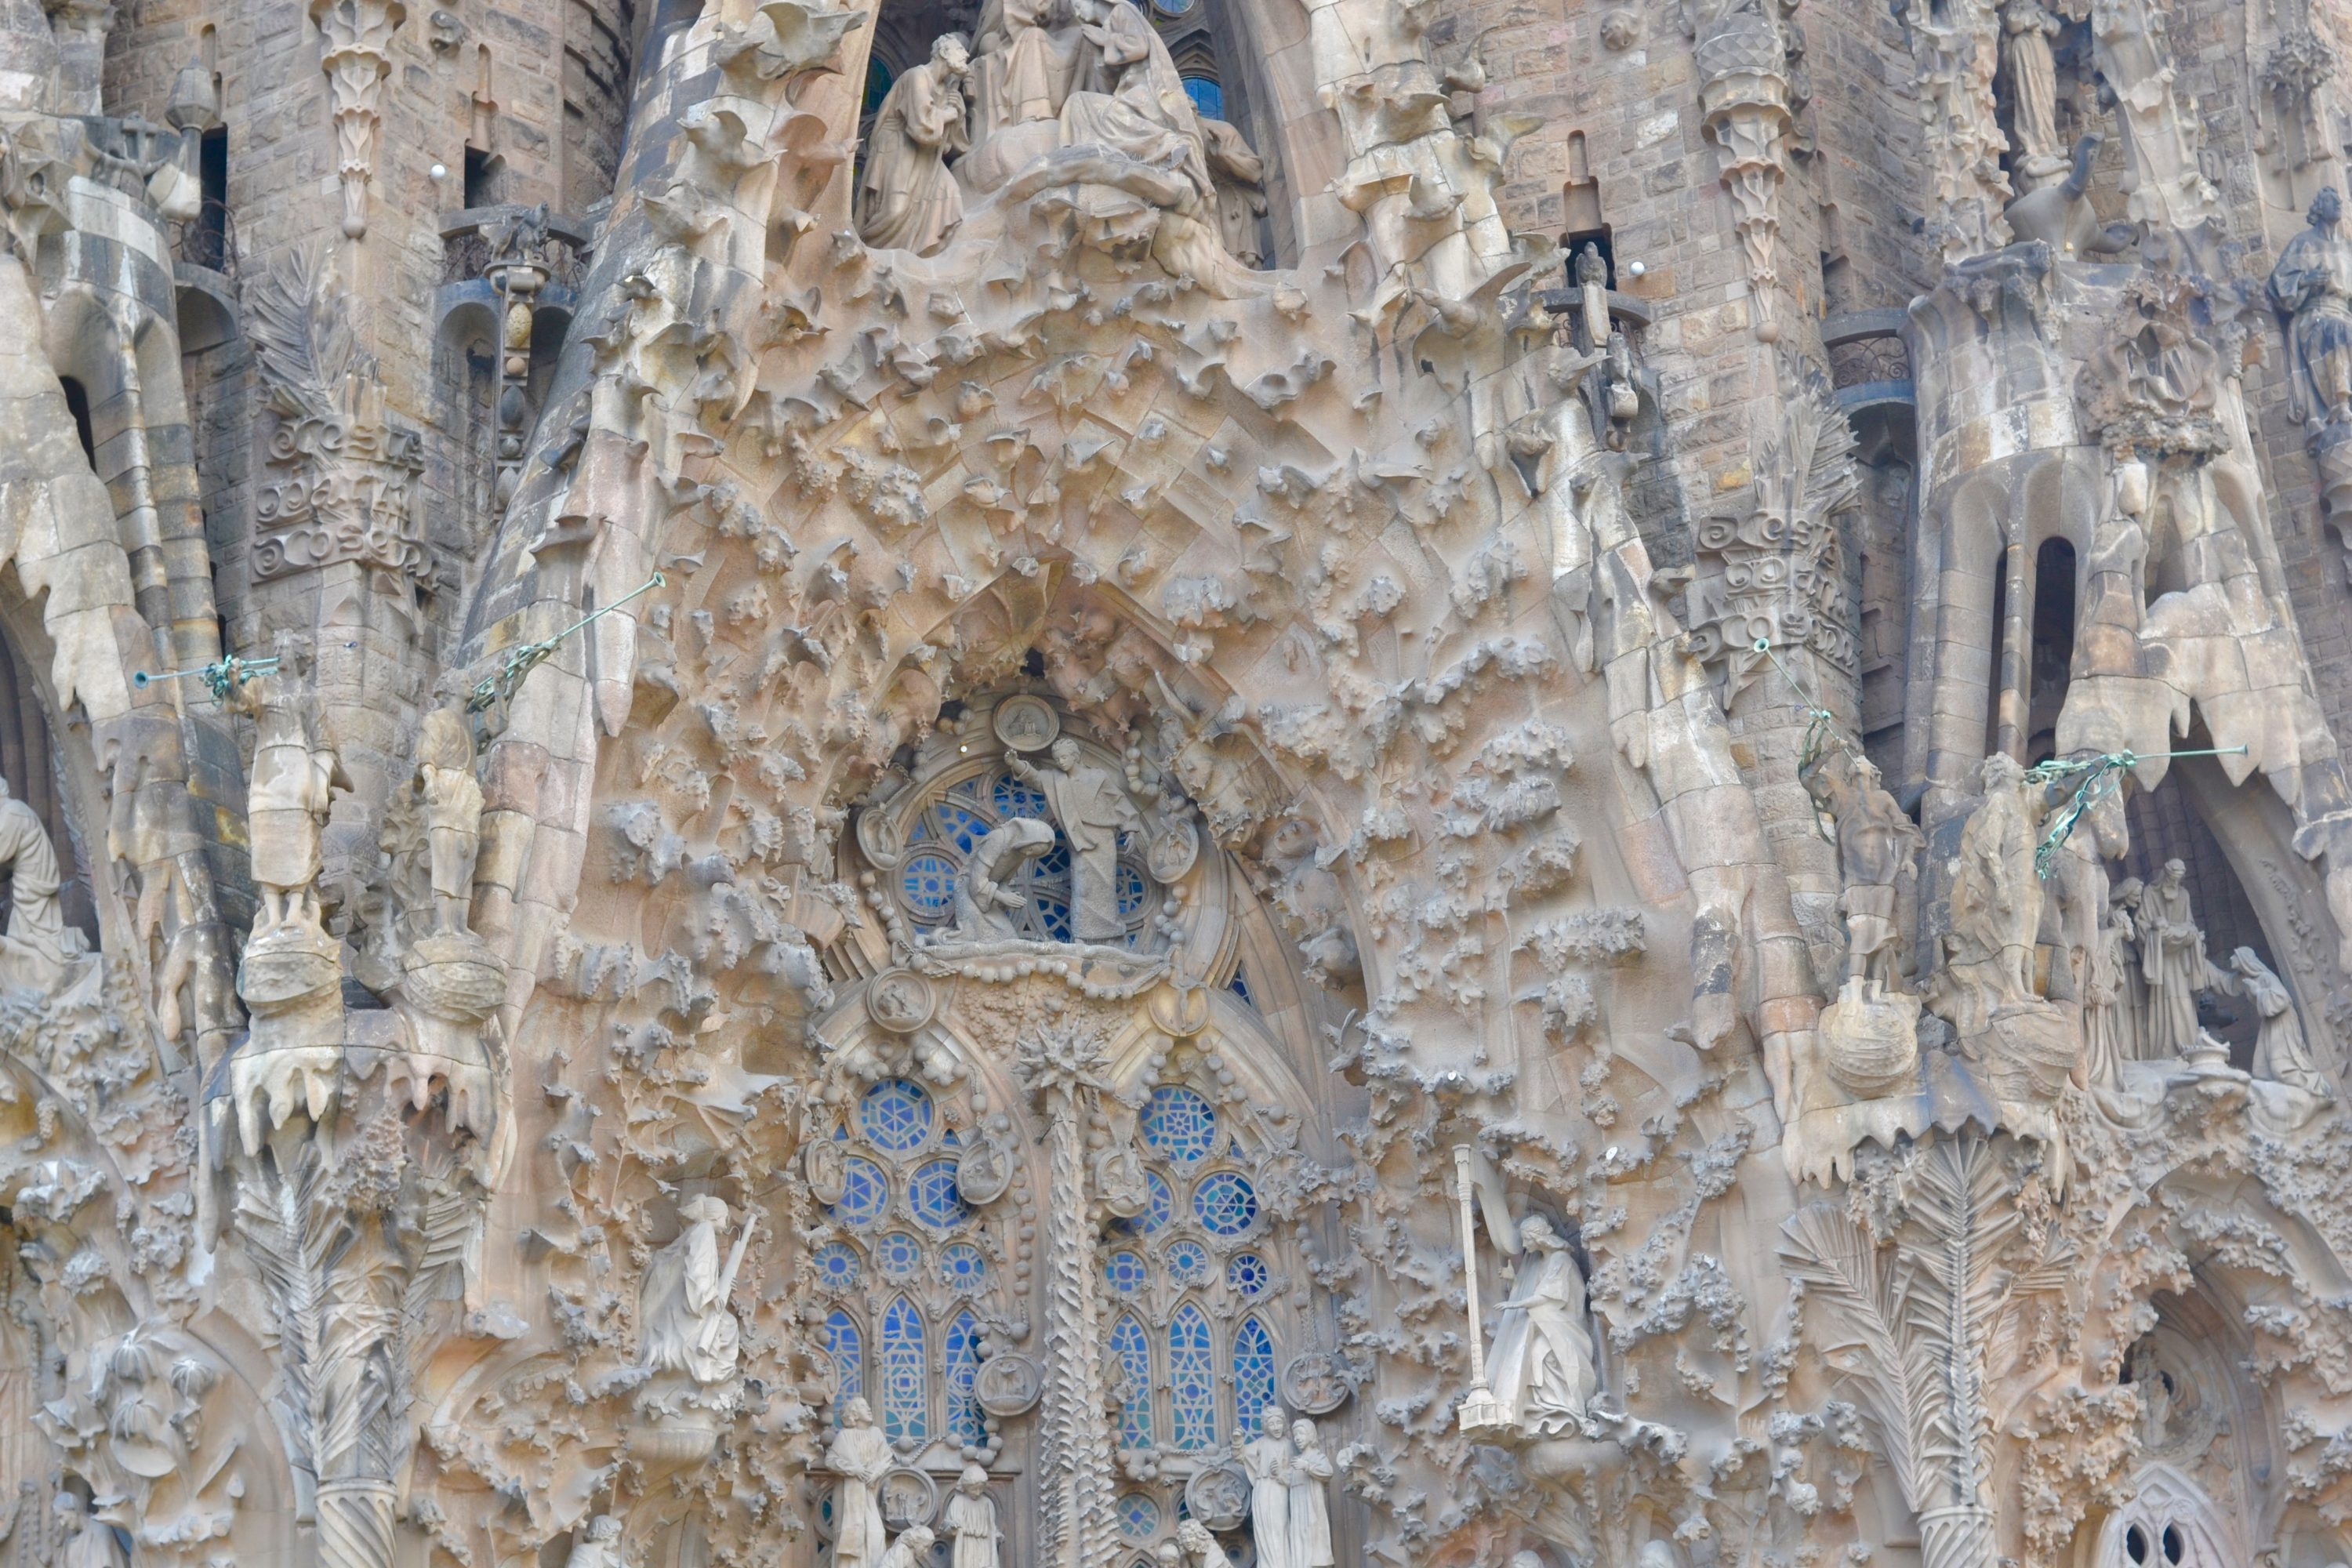 The detail on La Sagrada is mind blowing